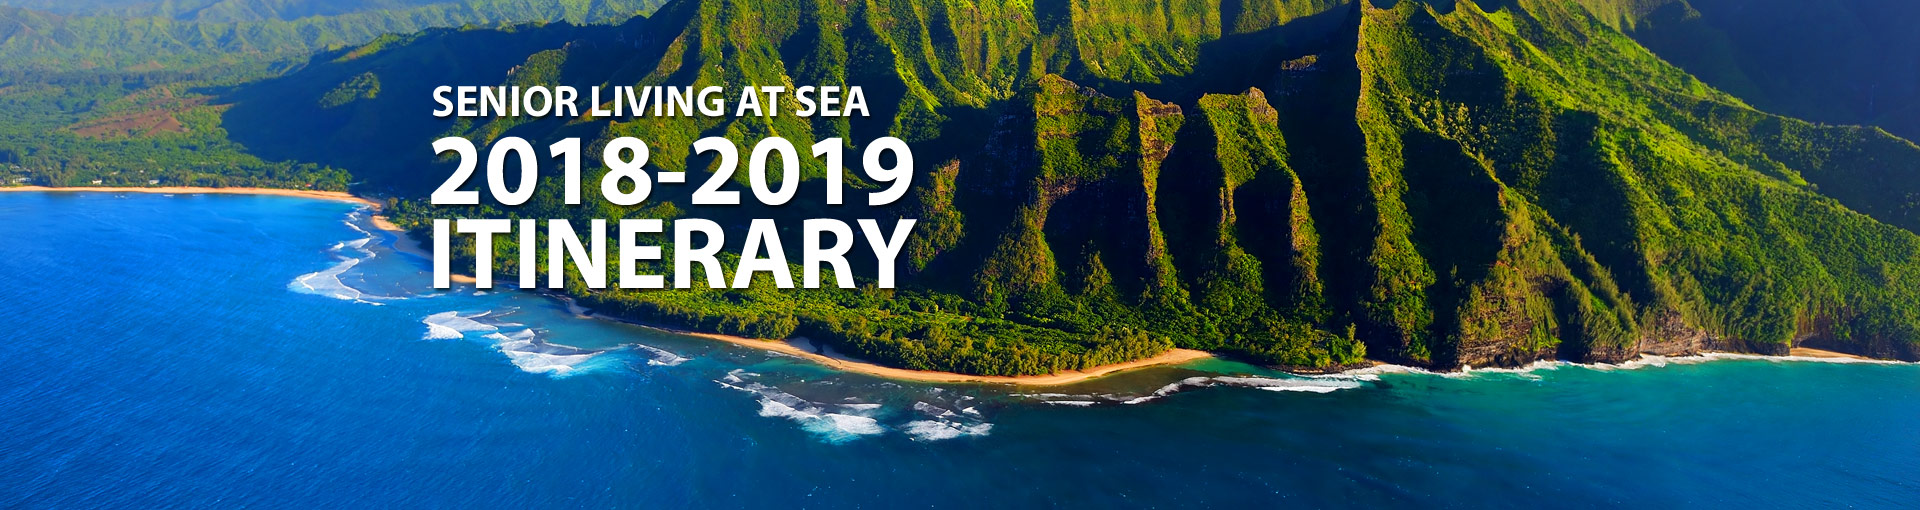 Senior Living at Sea Itinerary - Hawaiian coastline